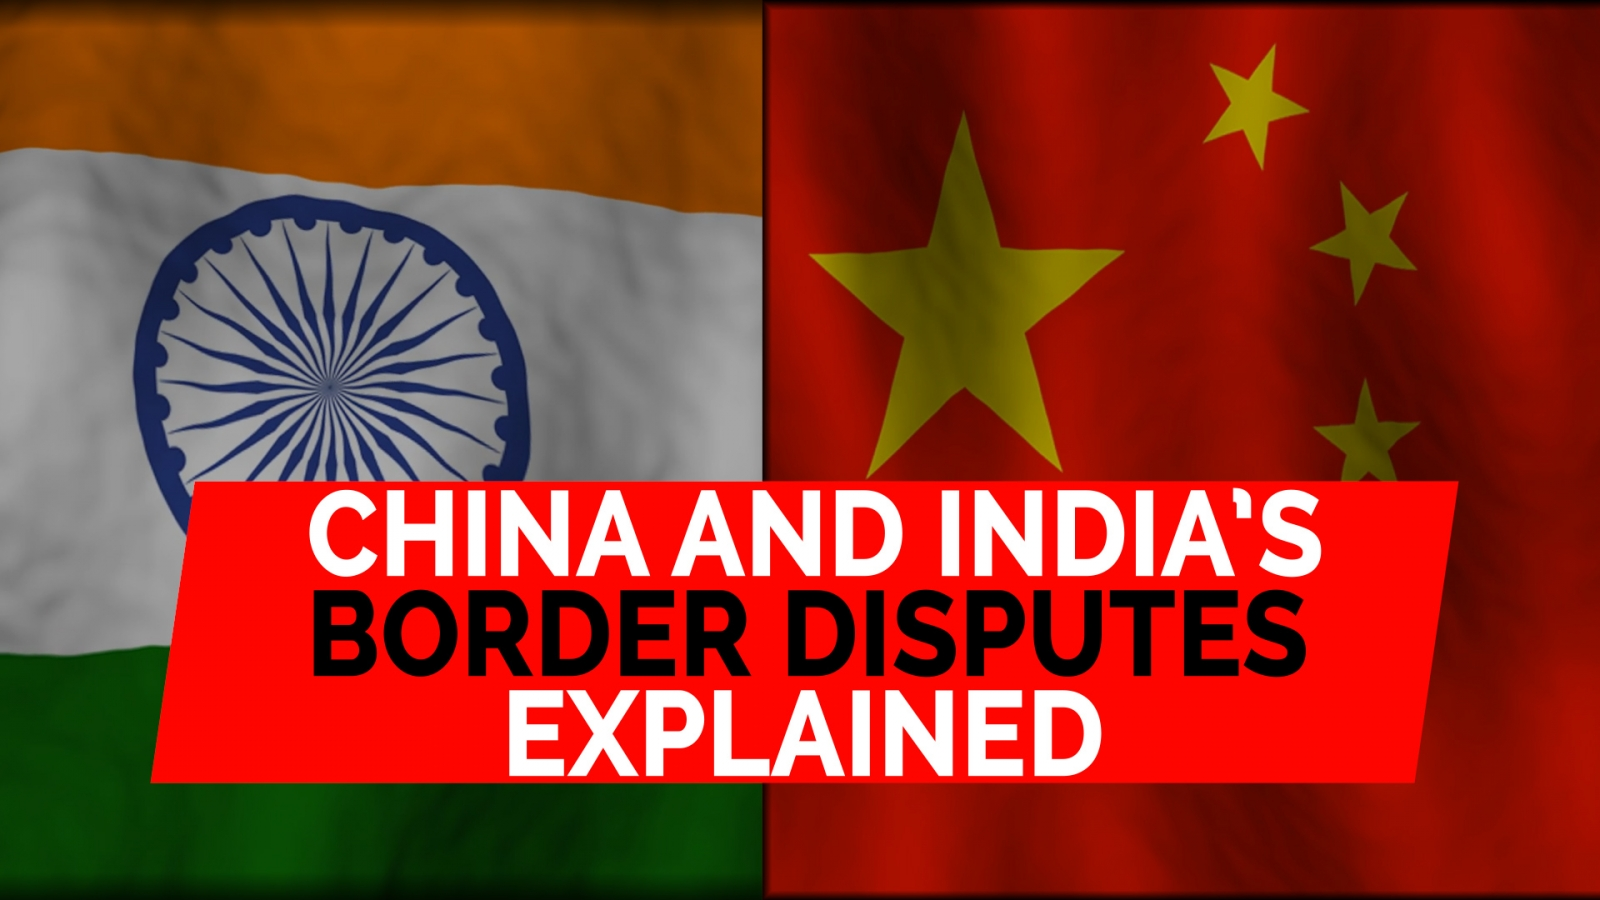 China And India's Border Disputes Explained